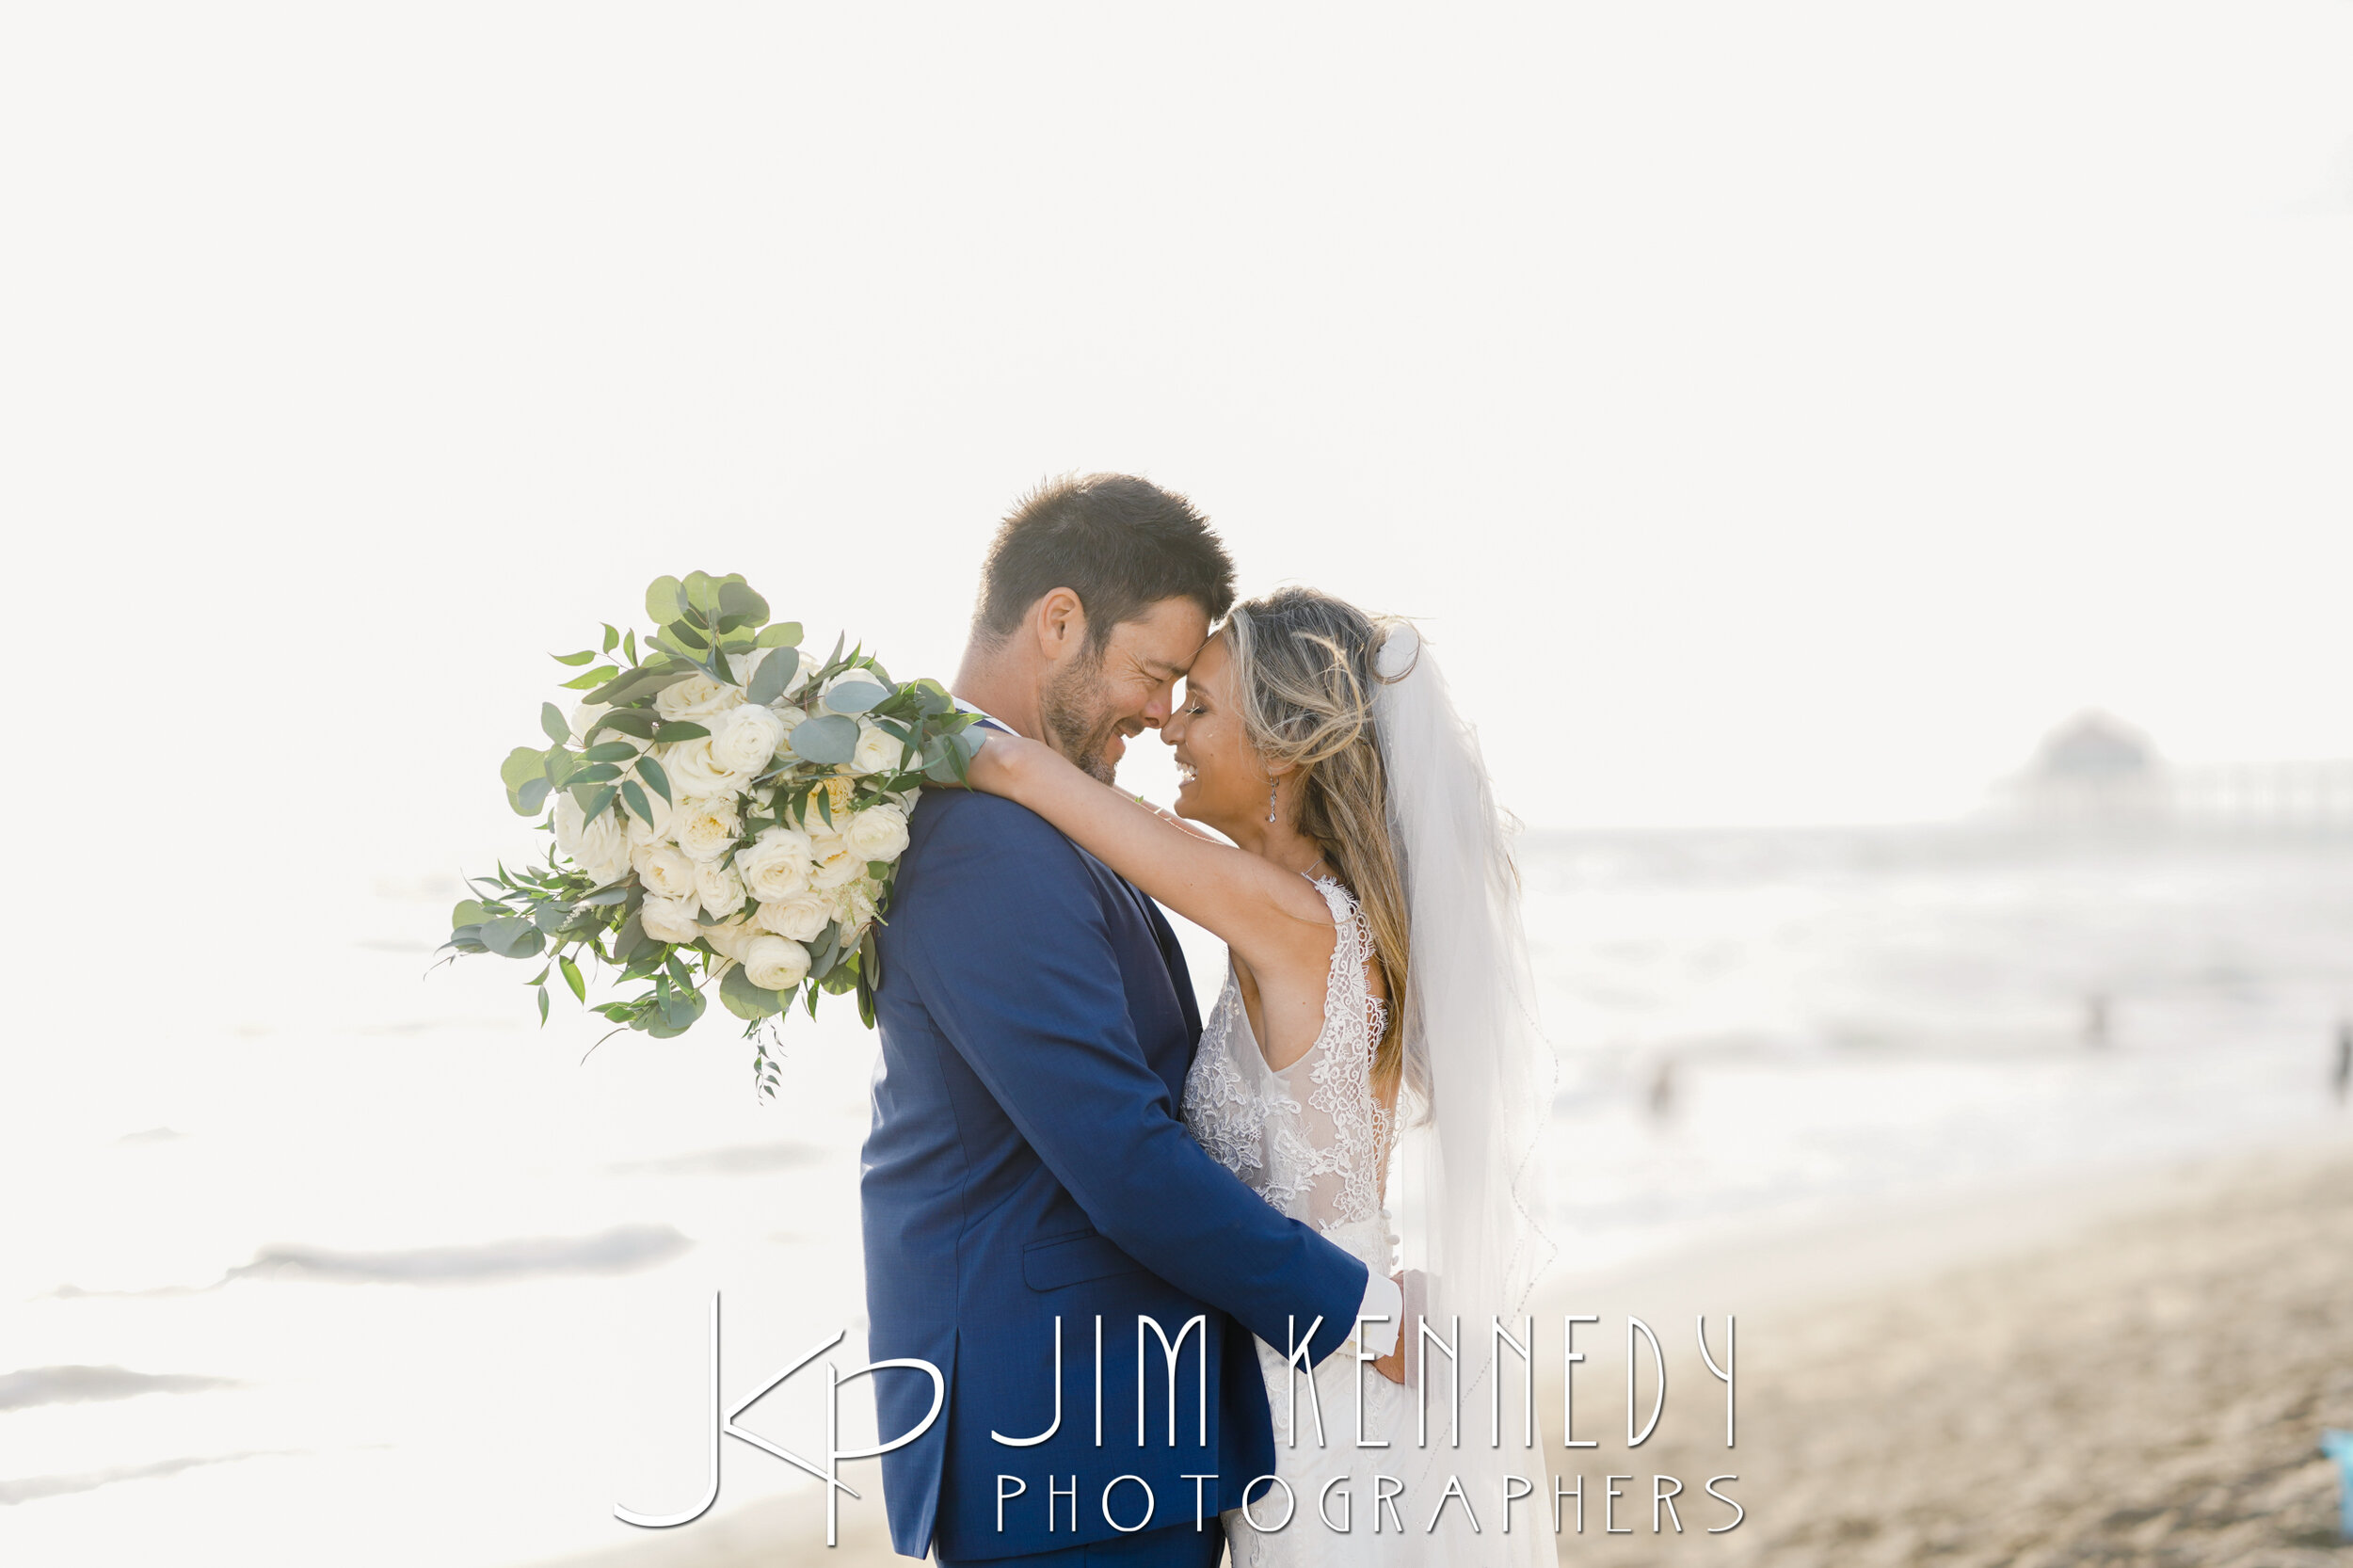 waterfront-hilton-wedding-jim-kennedy-photographers_0119.JPG